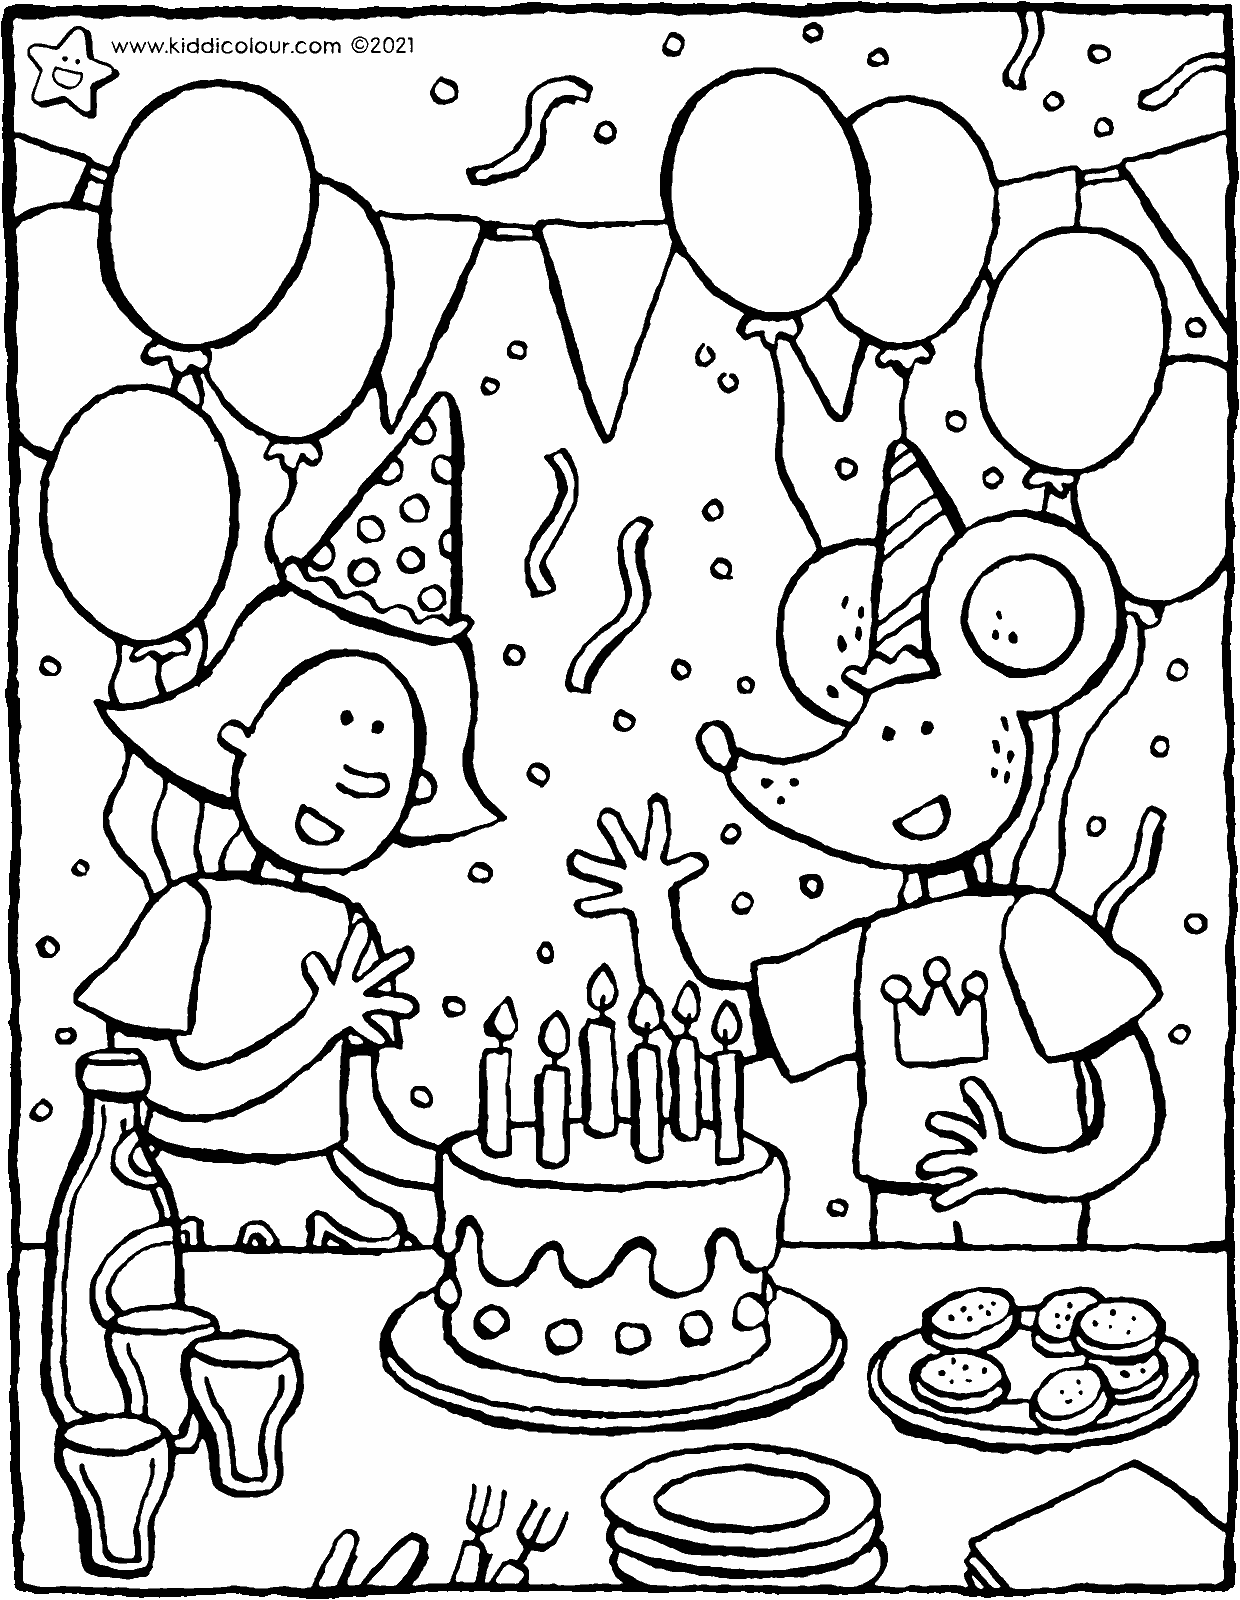 celebrate your birthday with Emma and Thomas colouring page drawing picture 01V